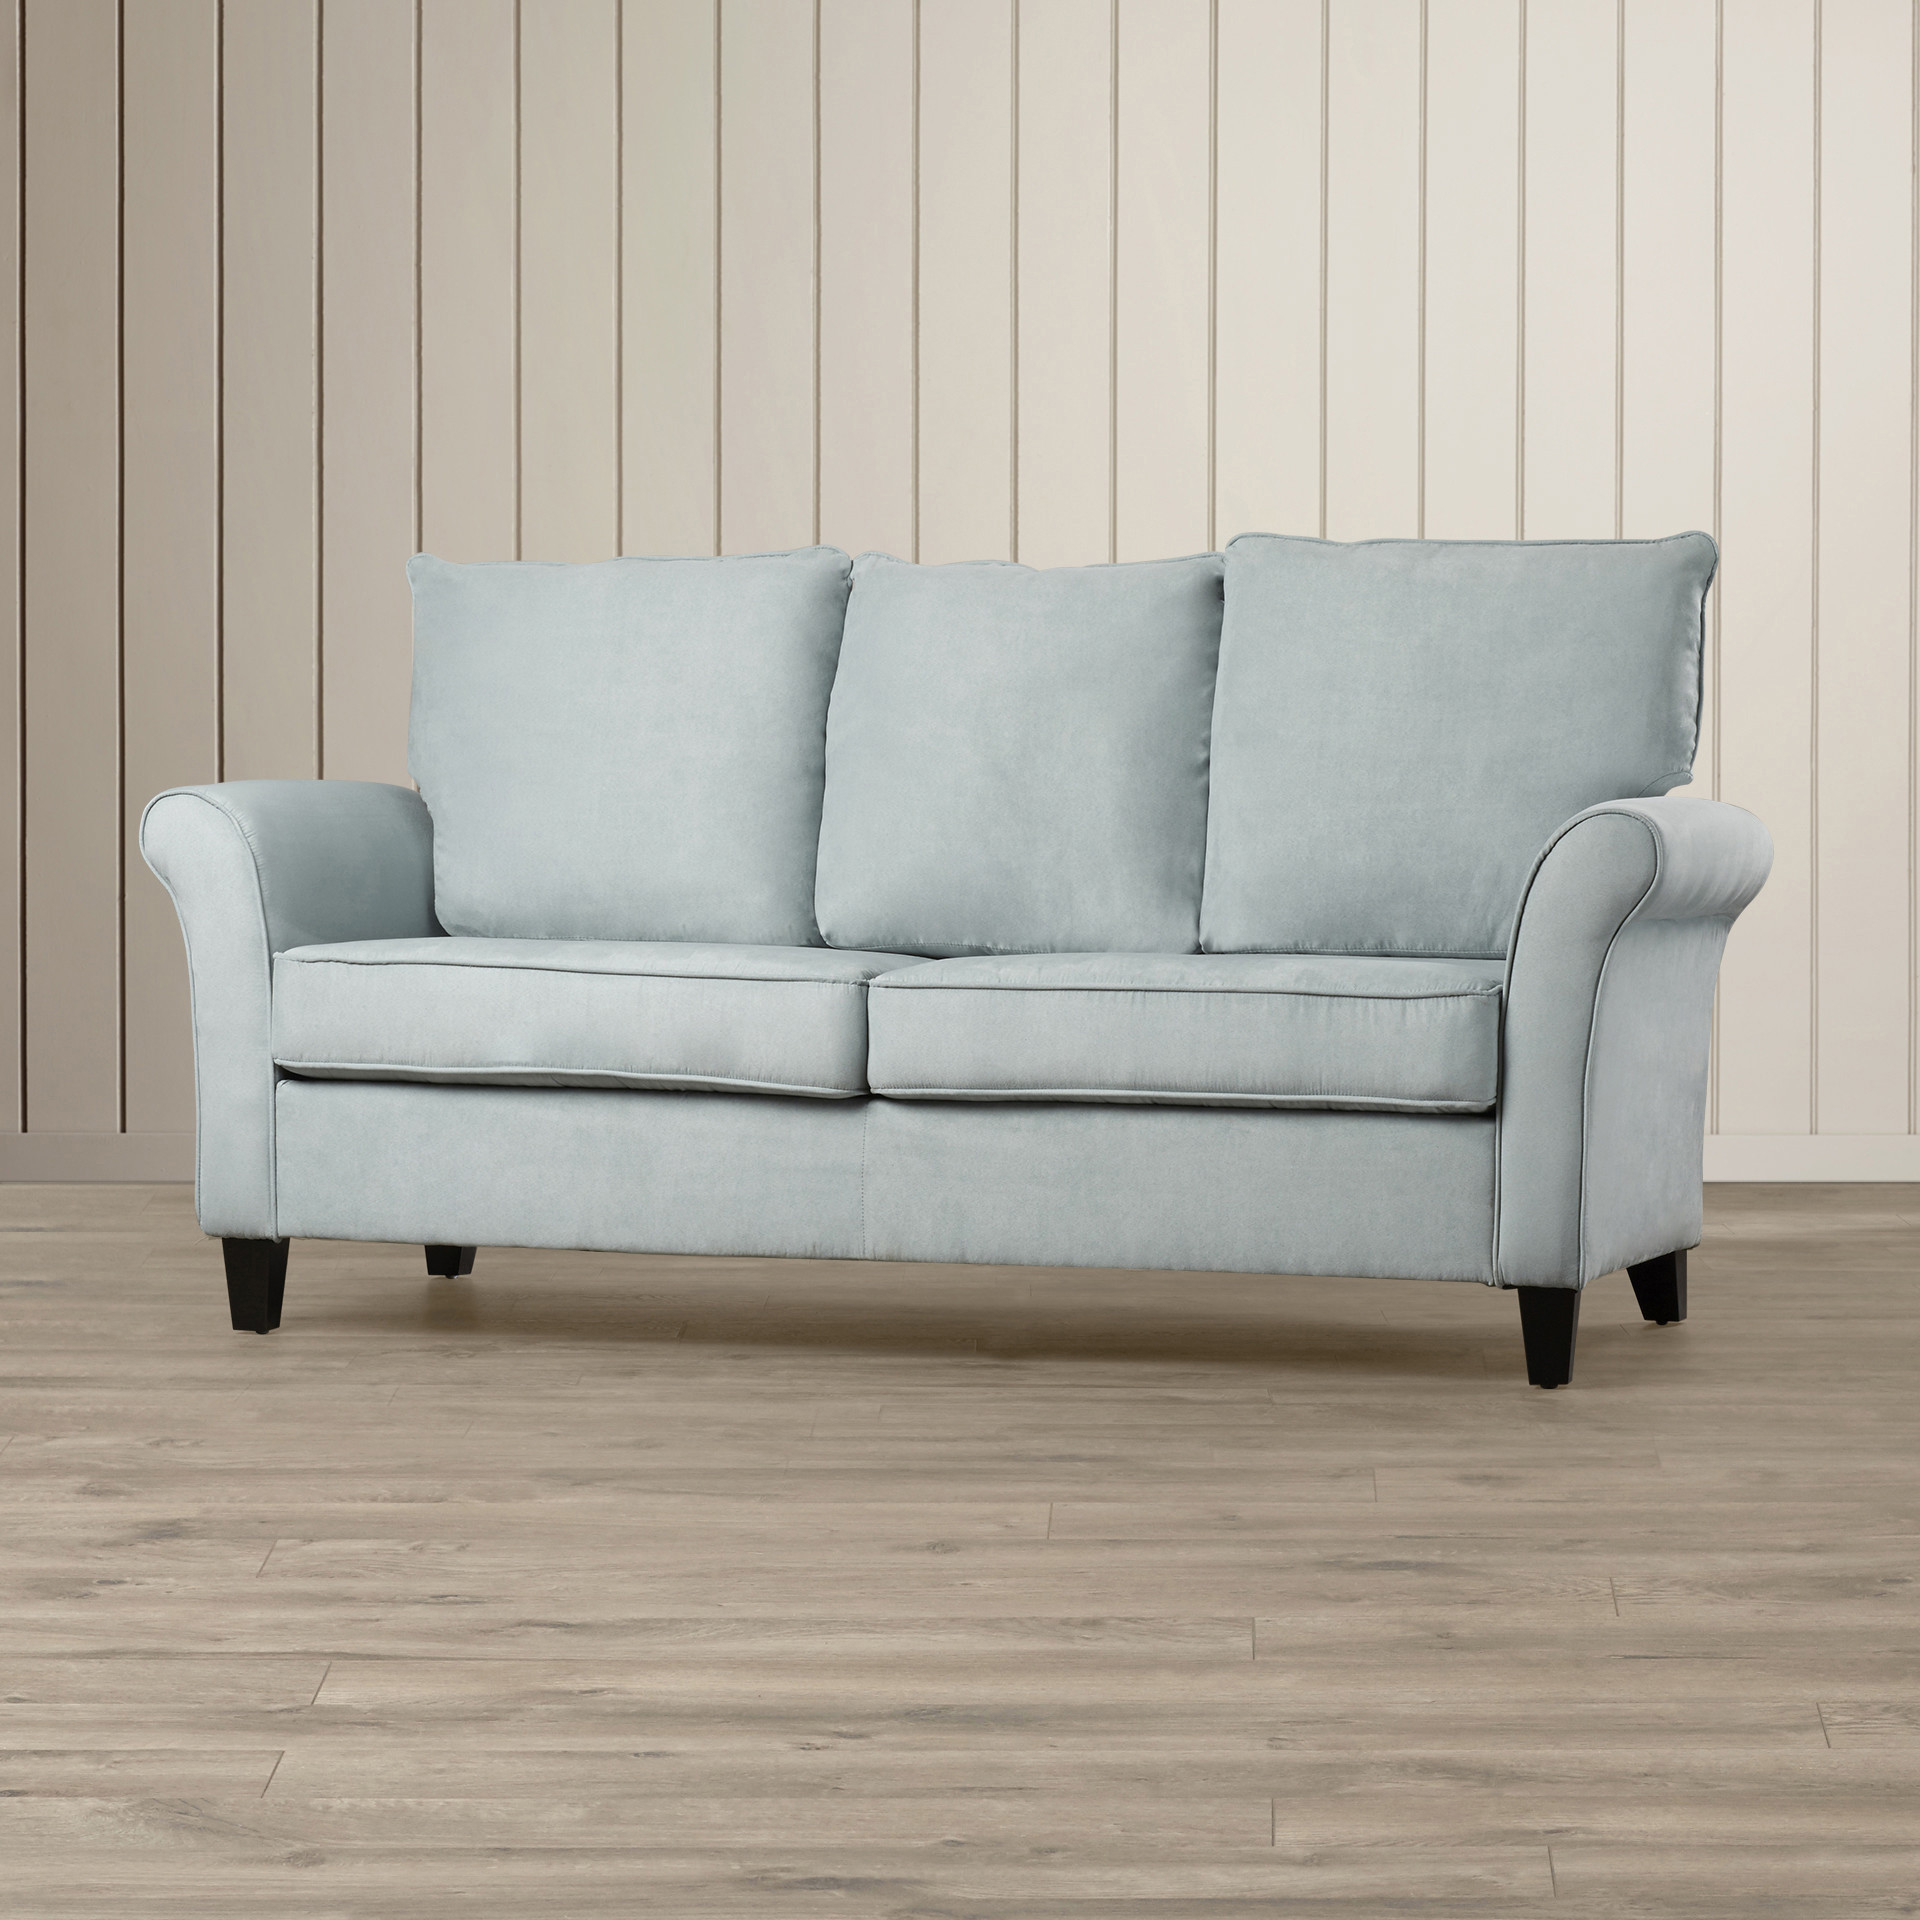 Best ideas about Wayfair Sectional Sofa . Save or Pin Beachcrest Home Pa Sofa & Reviews Now.